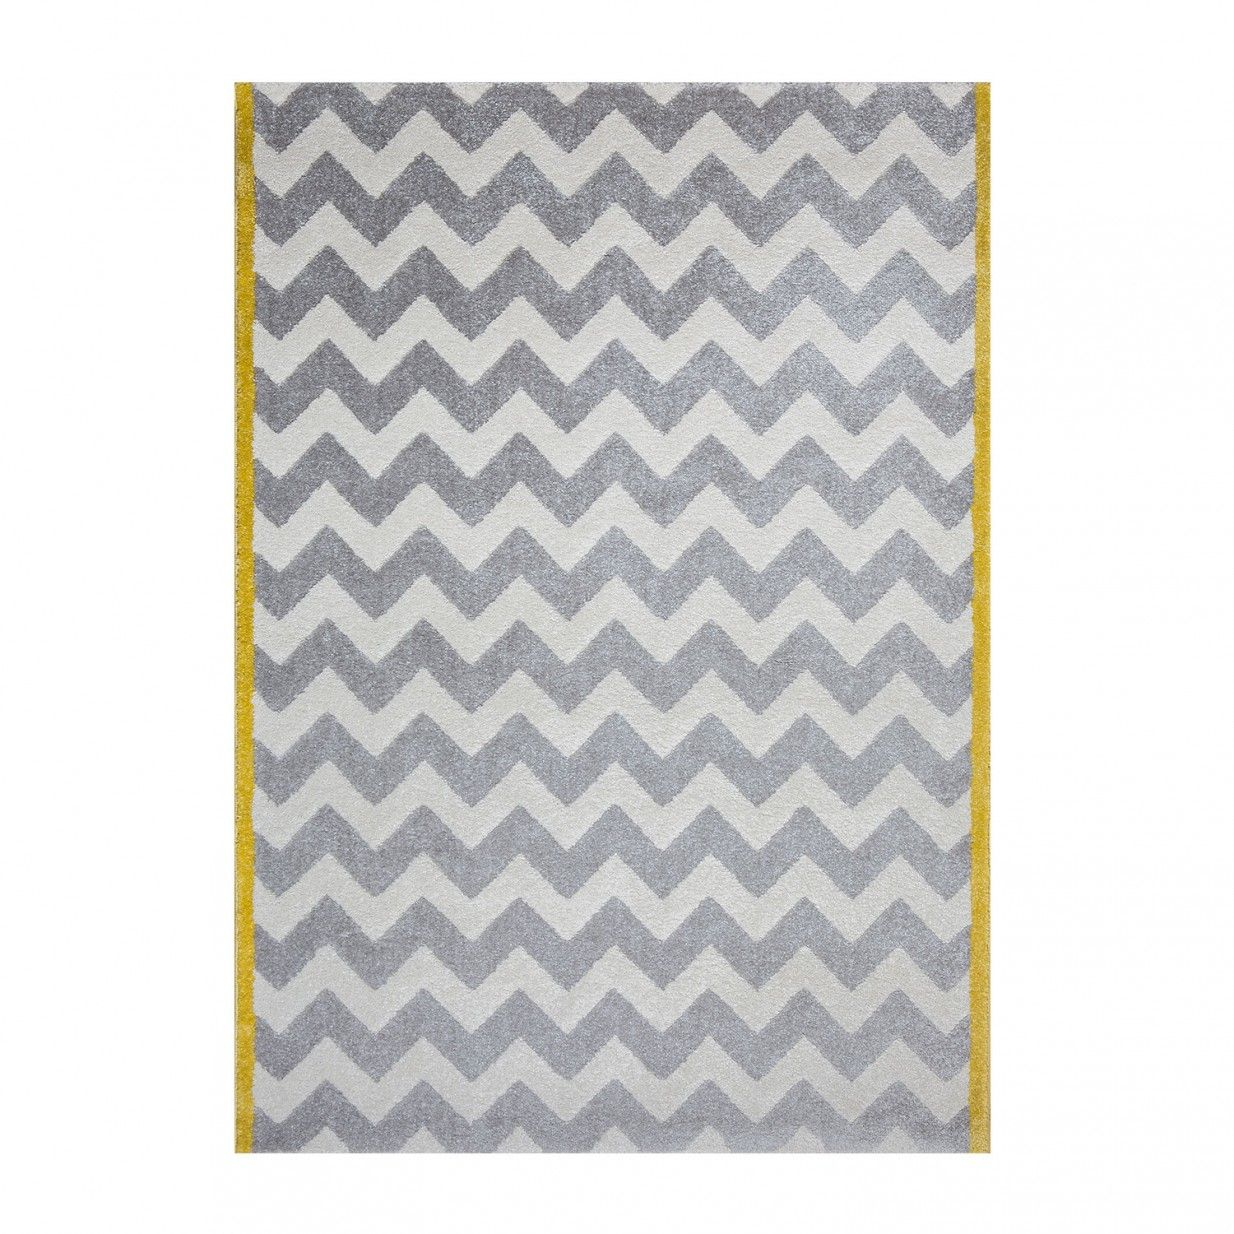 Chevron Teppich Grau 120x170 Chevron Teppich Art For Kids Interieur Inspiration